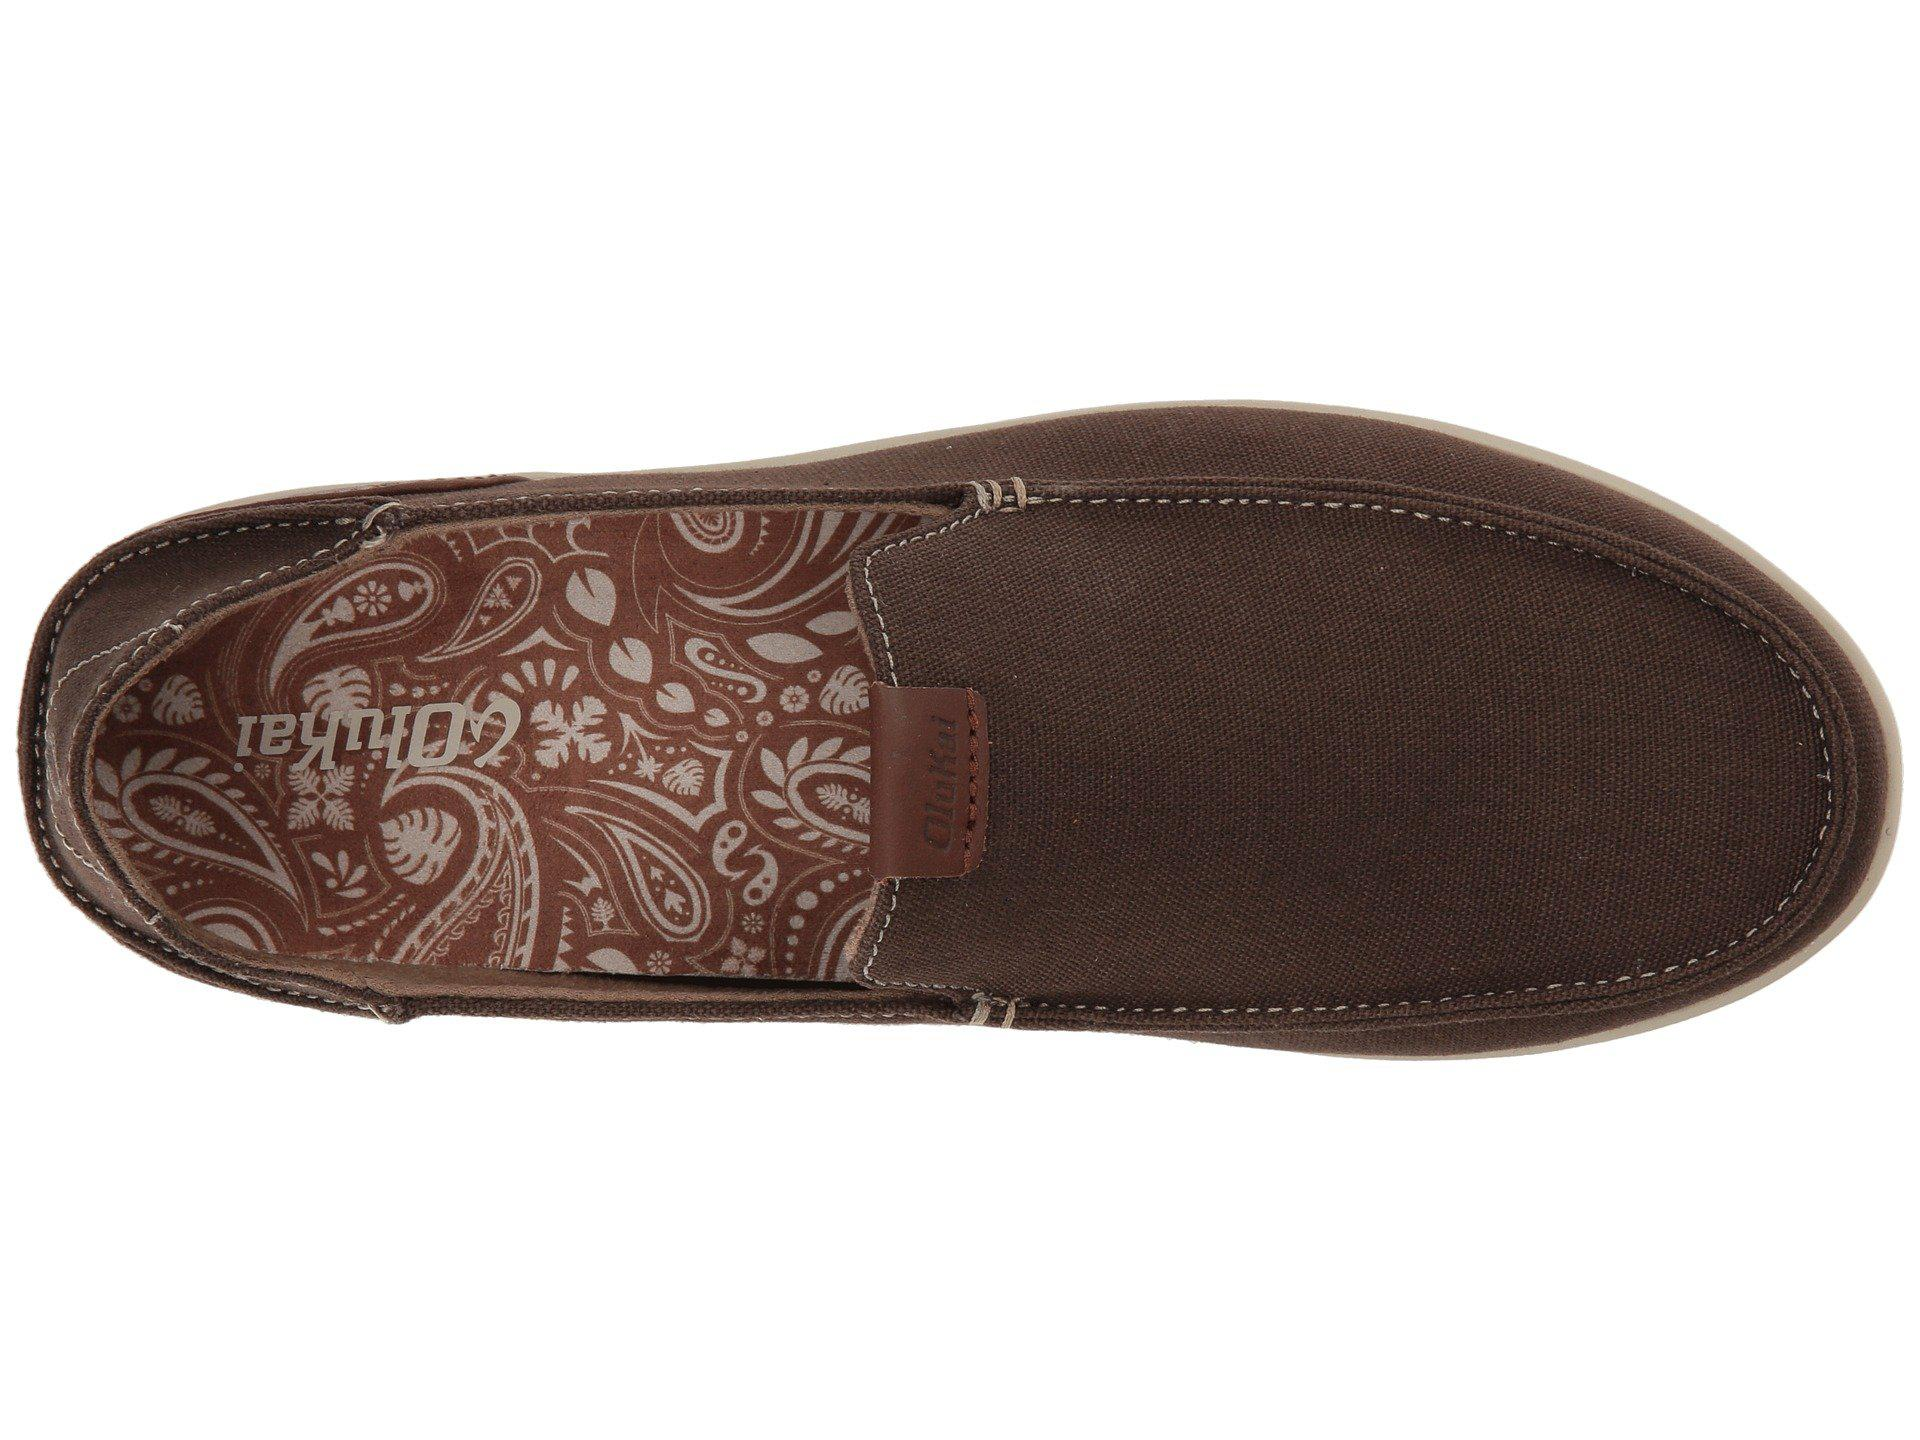 3b9ac0dfdde4 Olukai - Brown Manoa Slip-on (clay toffee) Men s Slip On Shoes. View  fullscreen